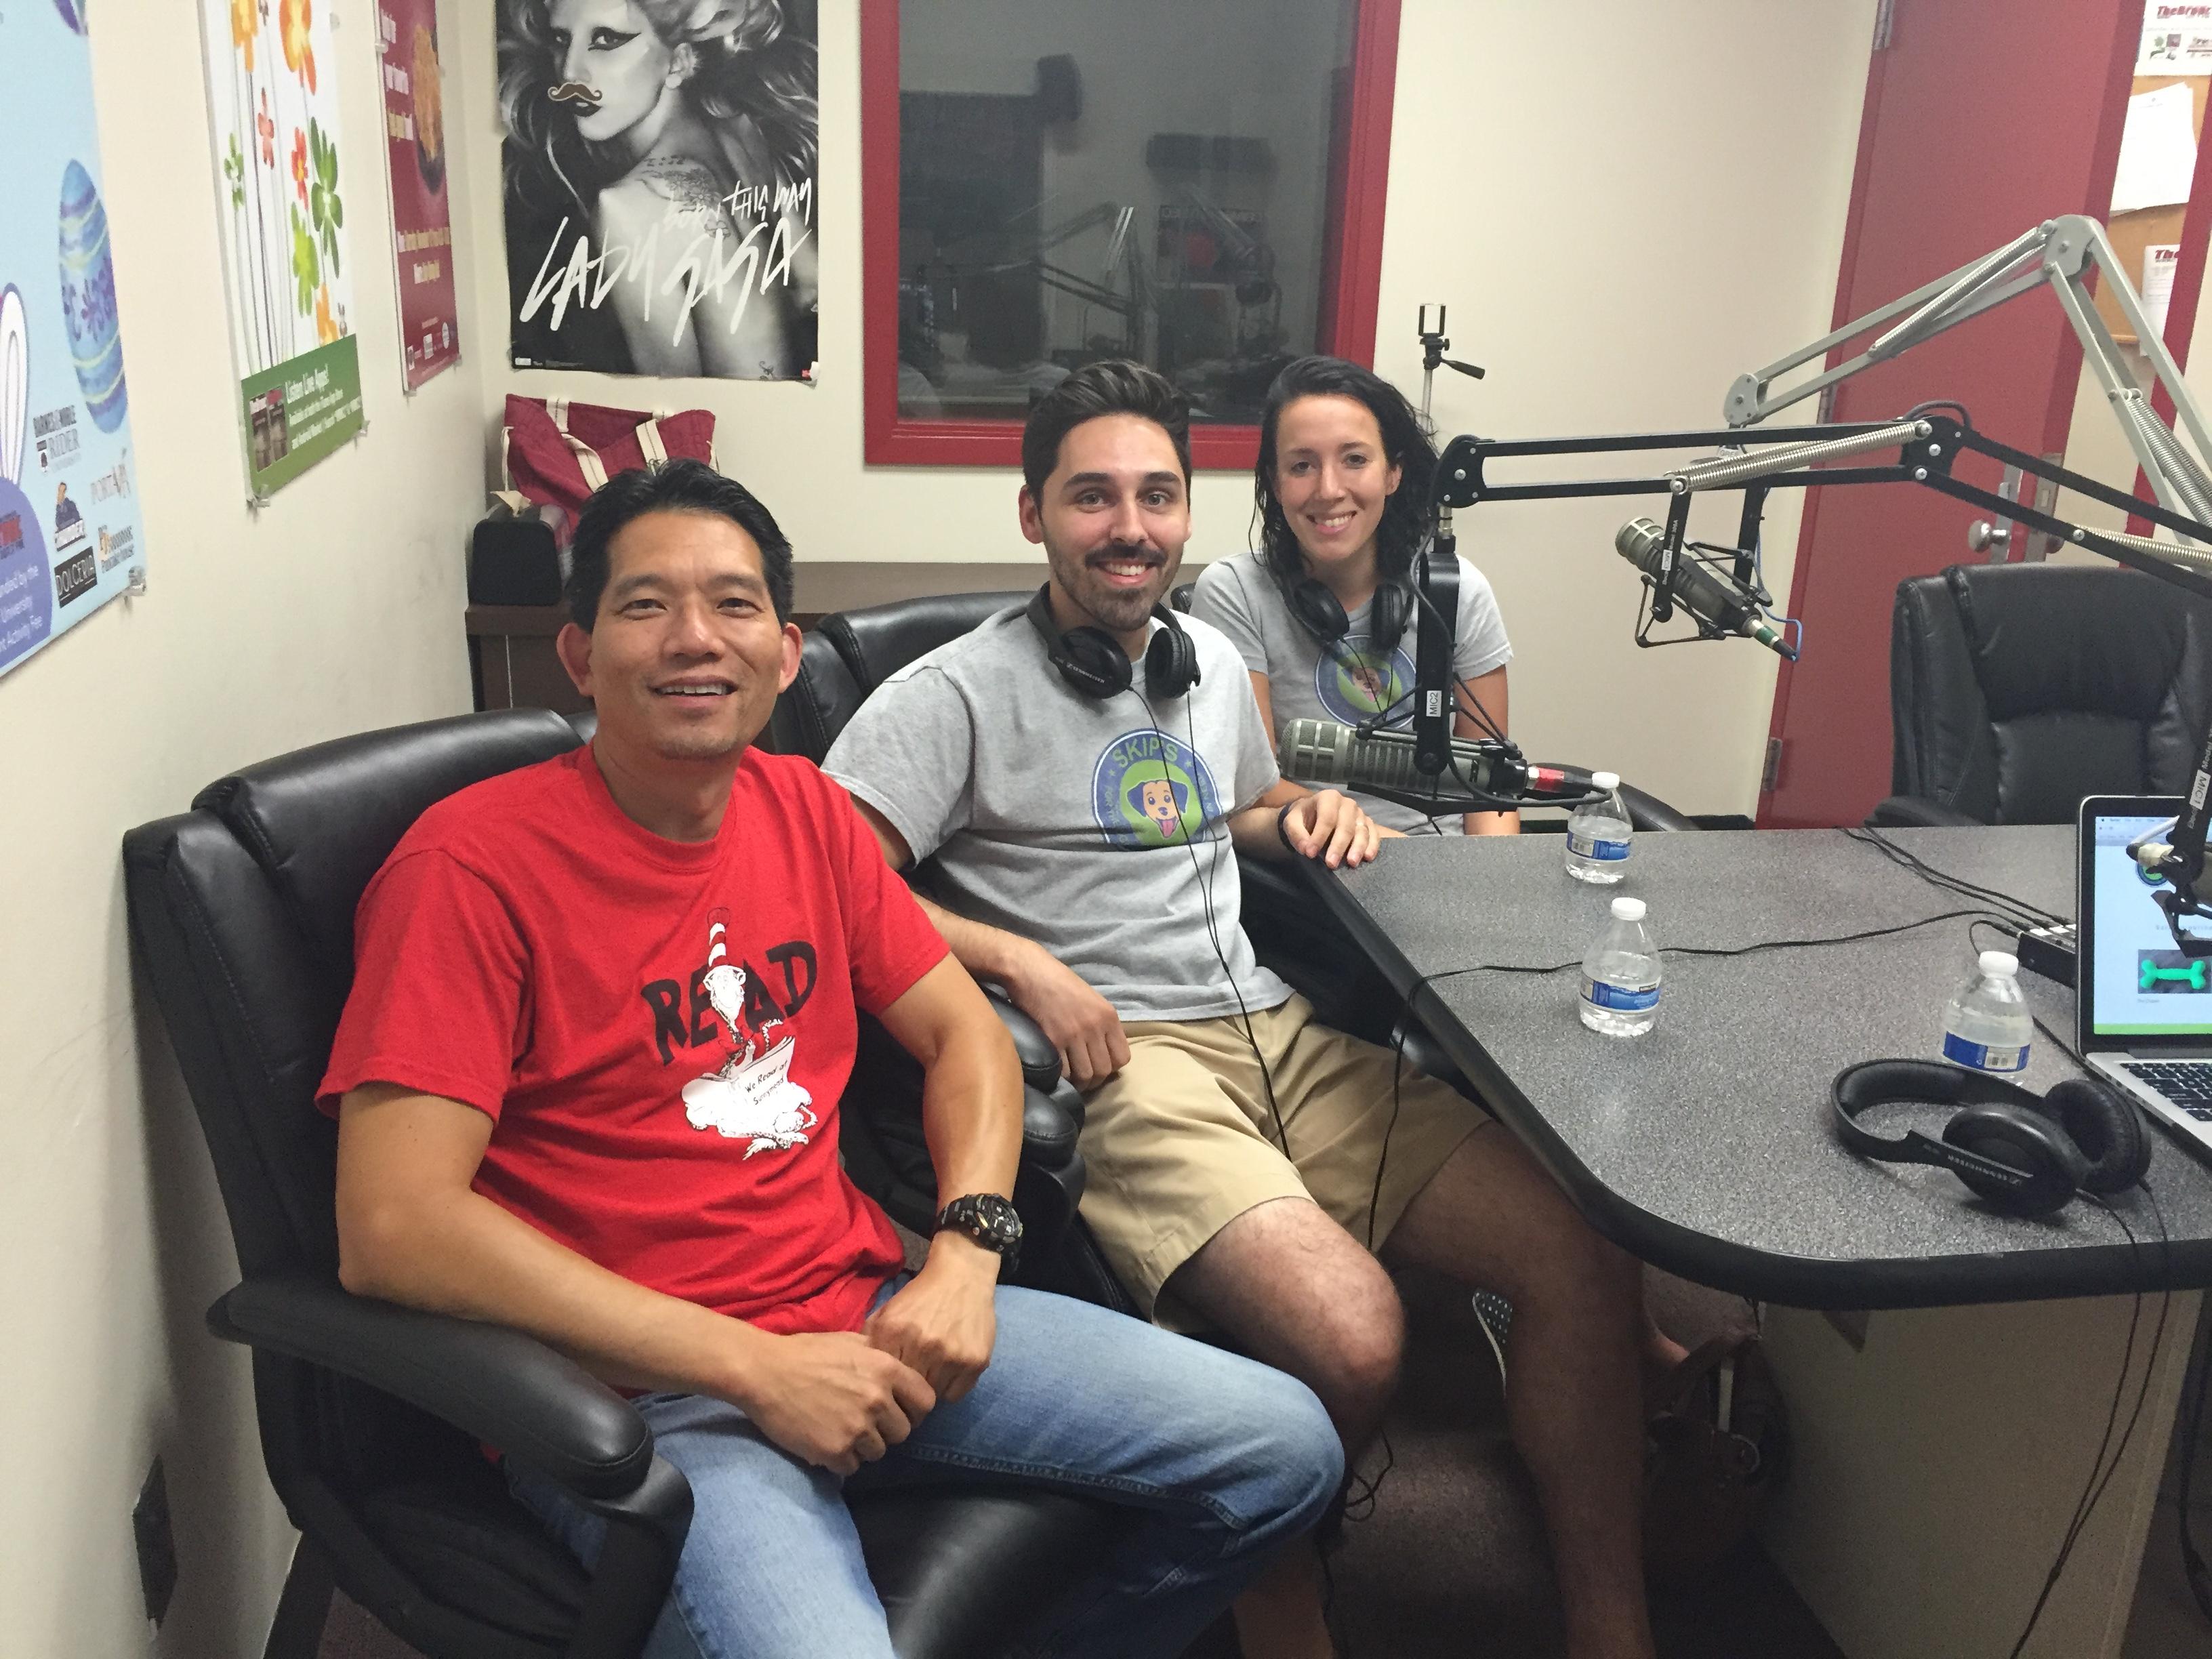 July 23rd, 2016 – Dr. T is joined by Skip's for Dogs owners John and Kylee Formento.